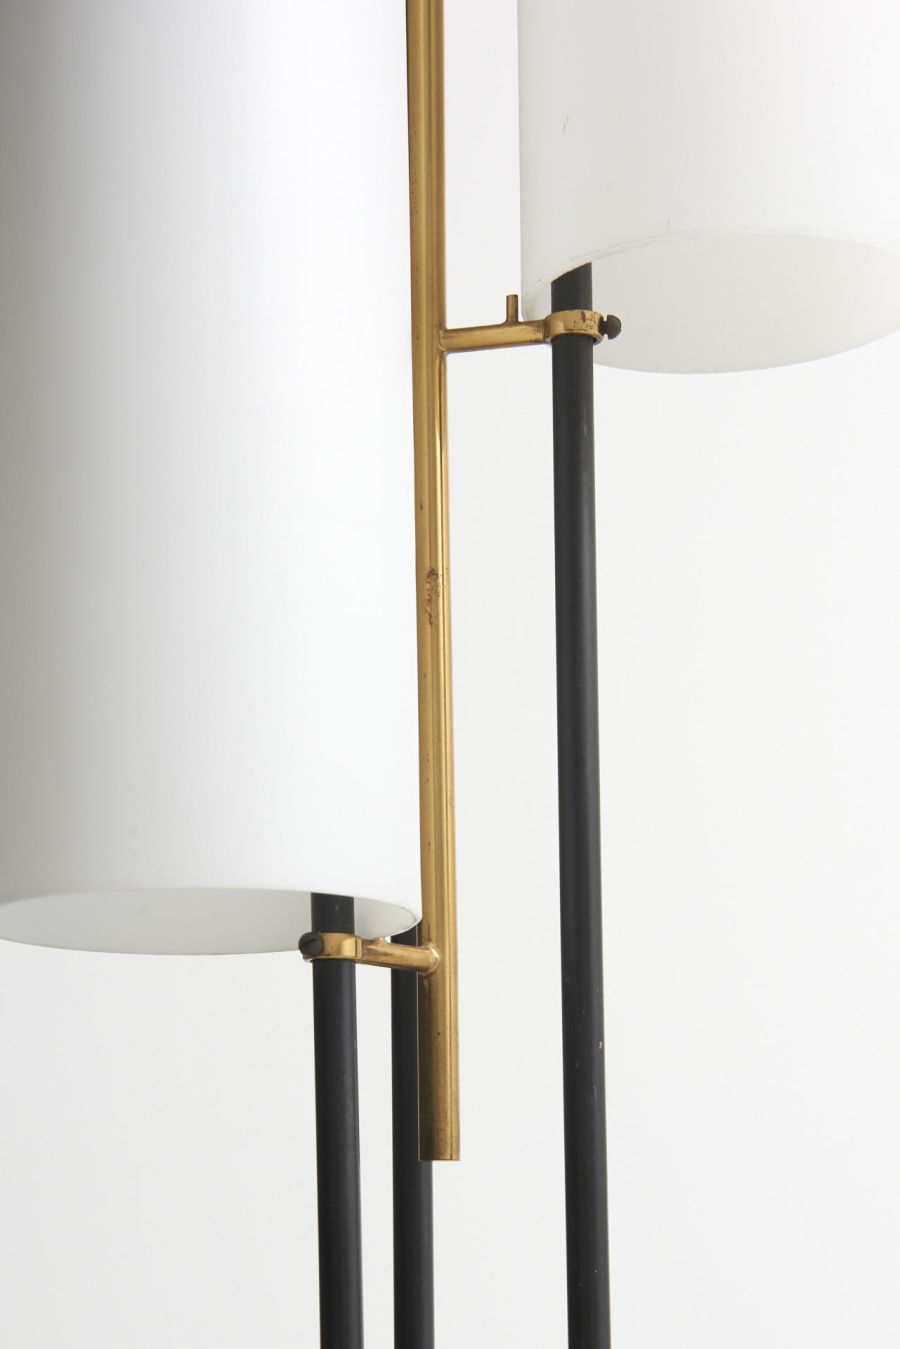 modestfurniture-vintage-1893-floor-lamp-stilnovo-marble-foot06